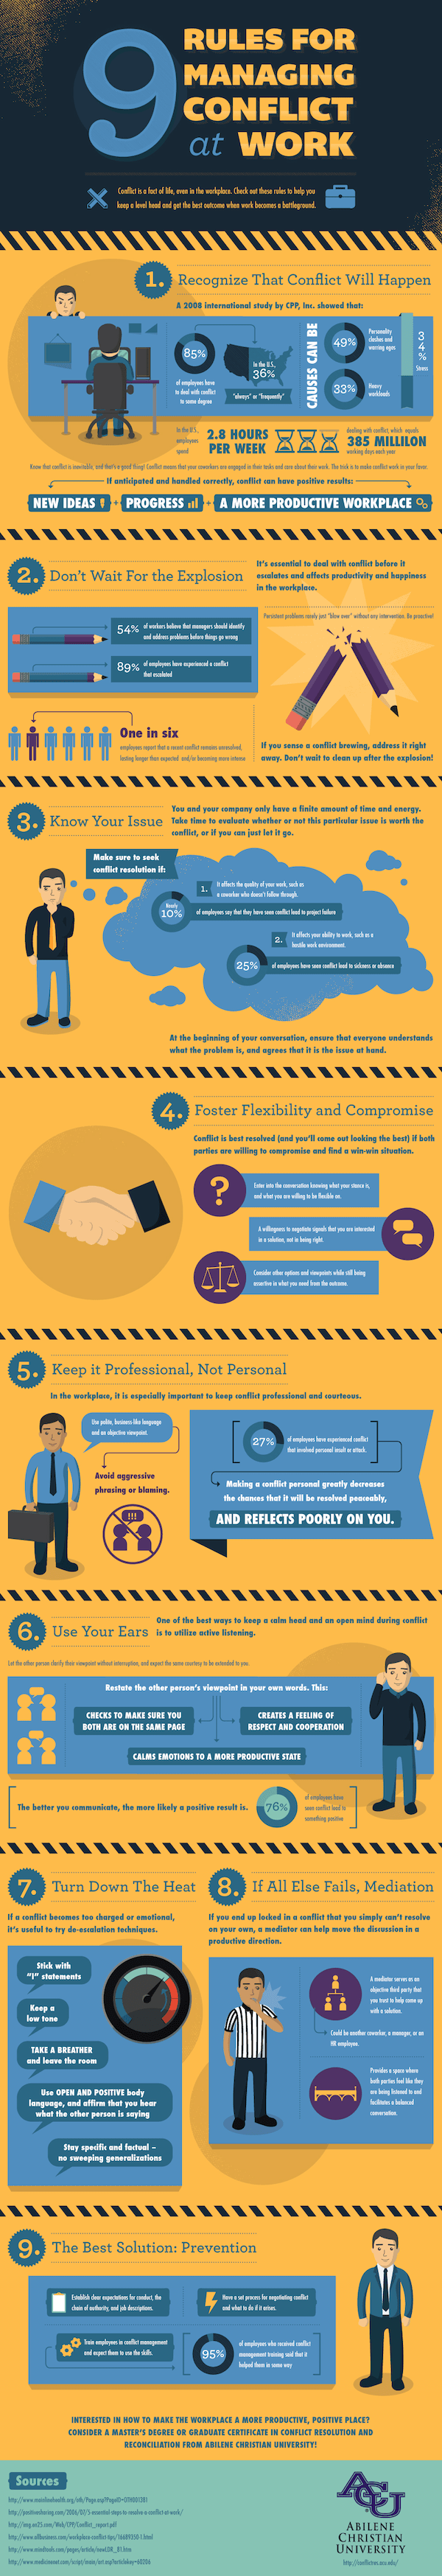 https://i0.wp.com/theundercoverrecruiter.com/wp-content/uploads/2013/08/infographic-managing-conflict-at-work.png